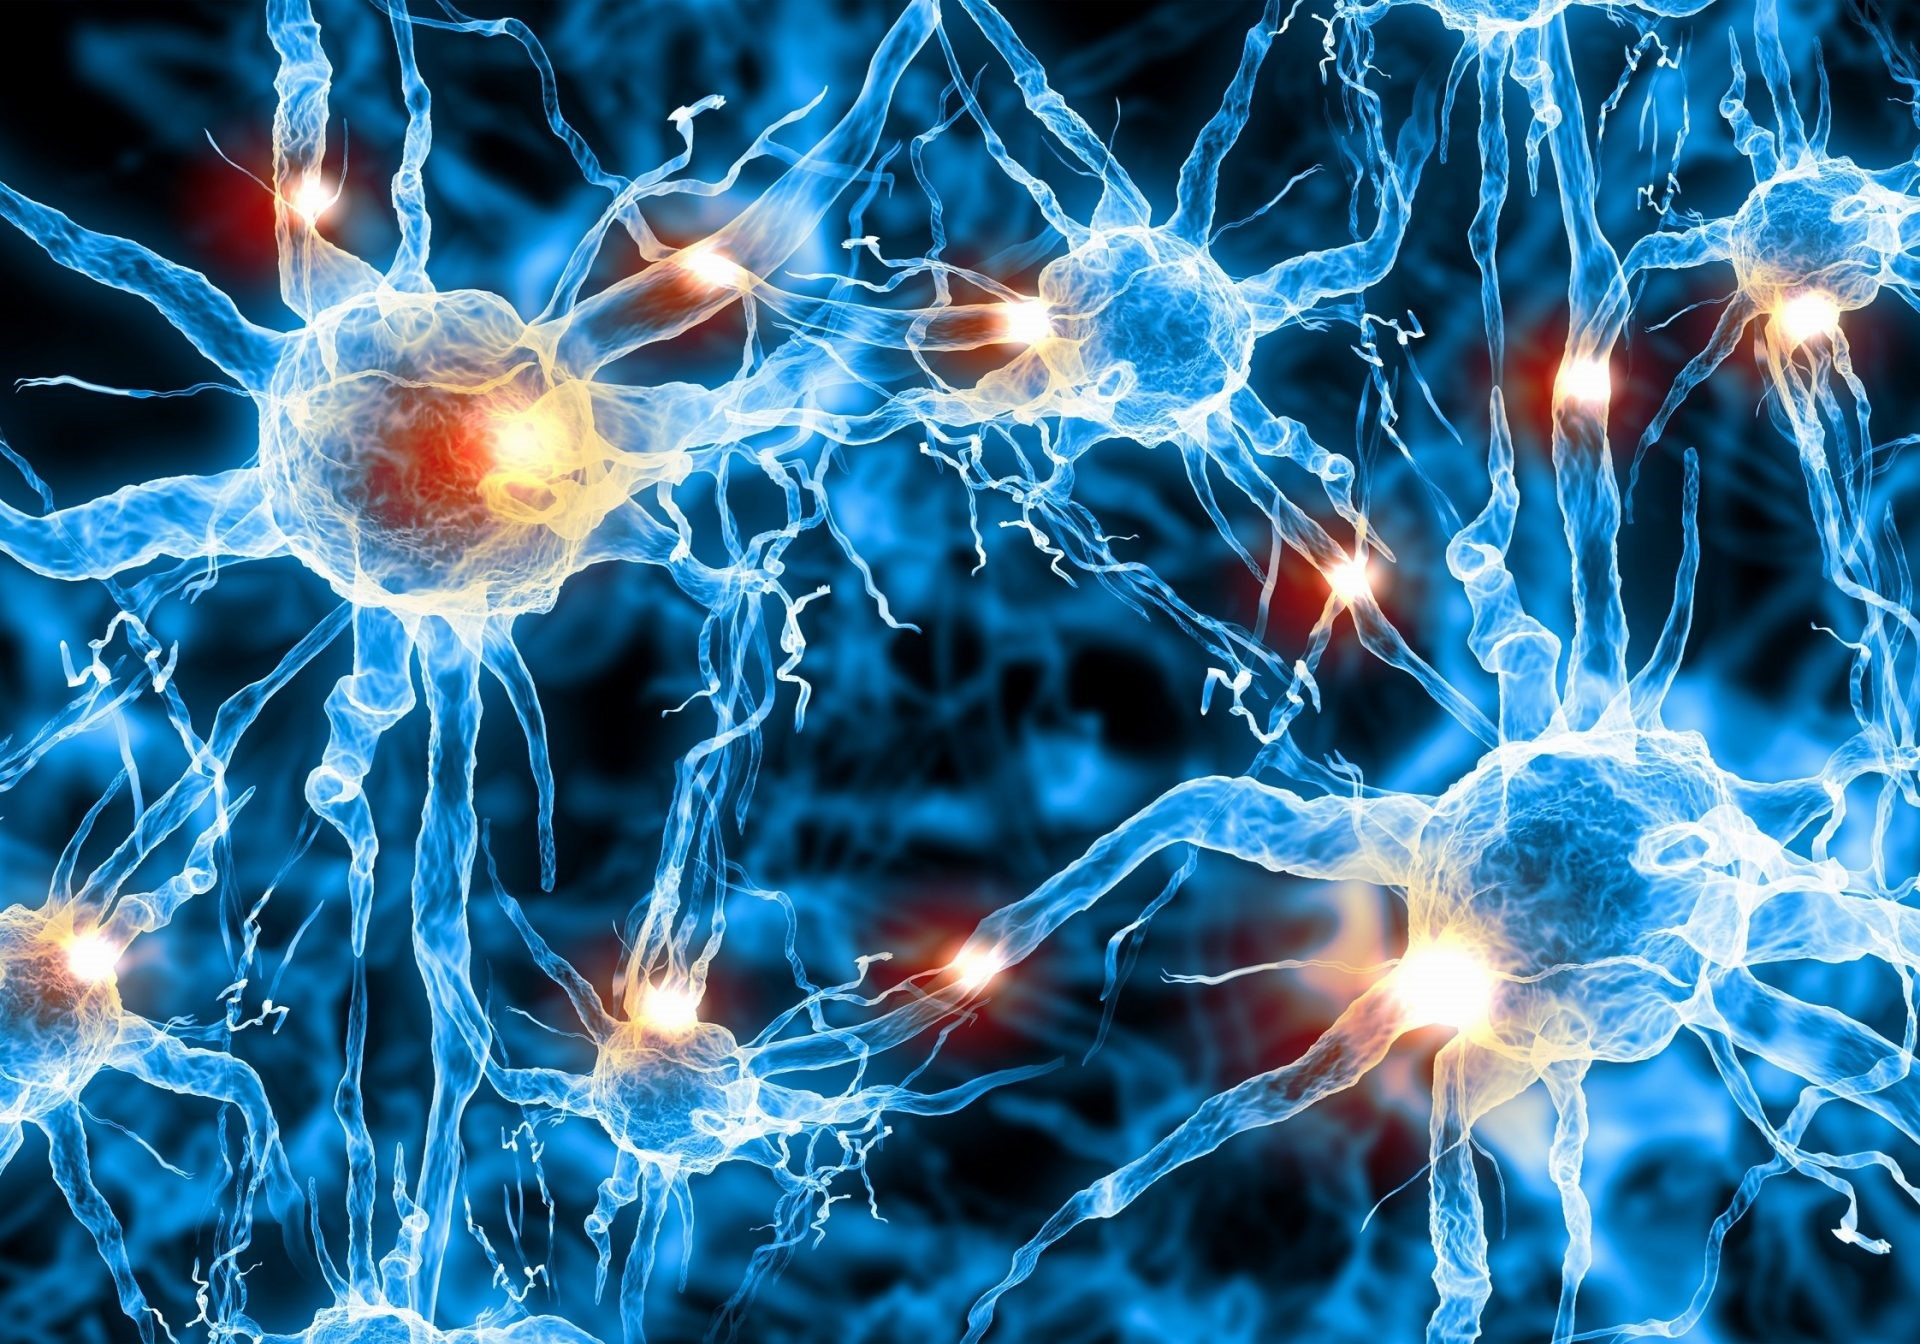 Neuromodulation as an Alternative to Opioids in the Evolving Health Care Crisis